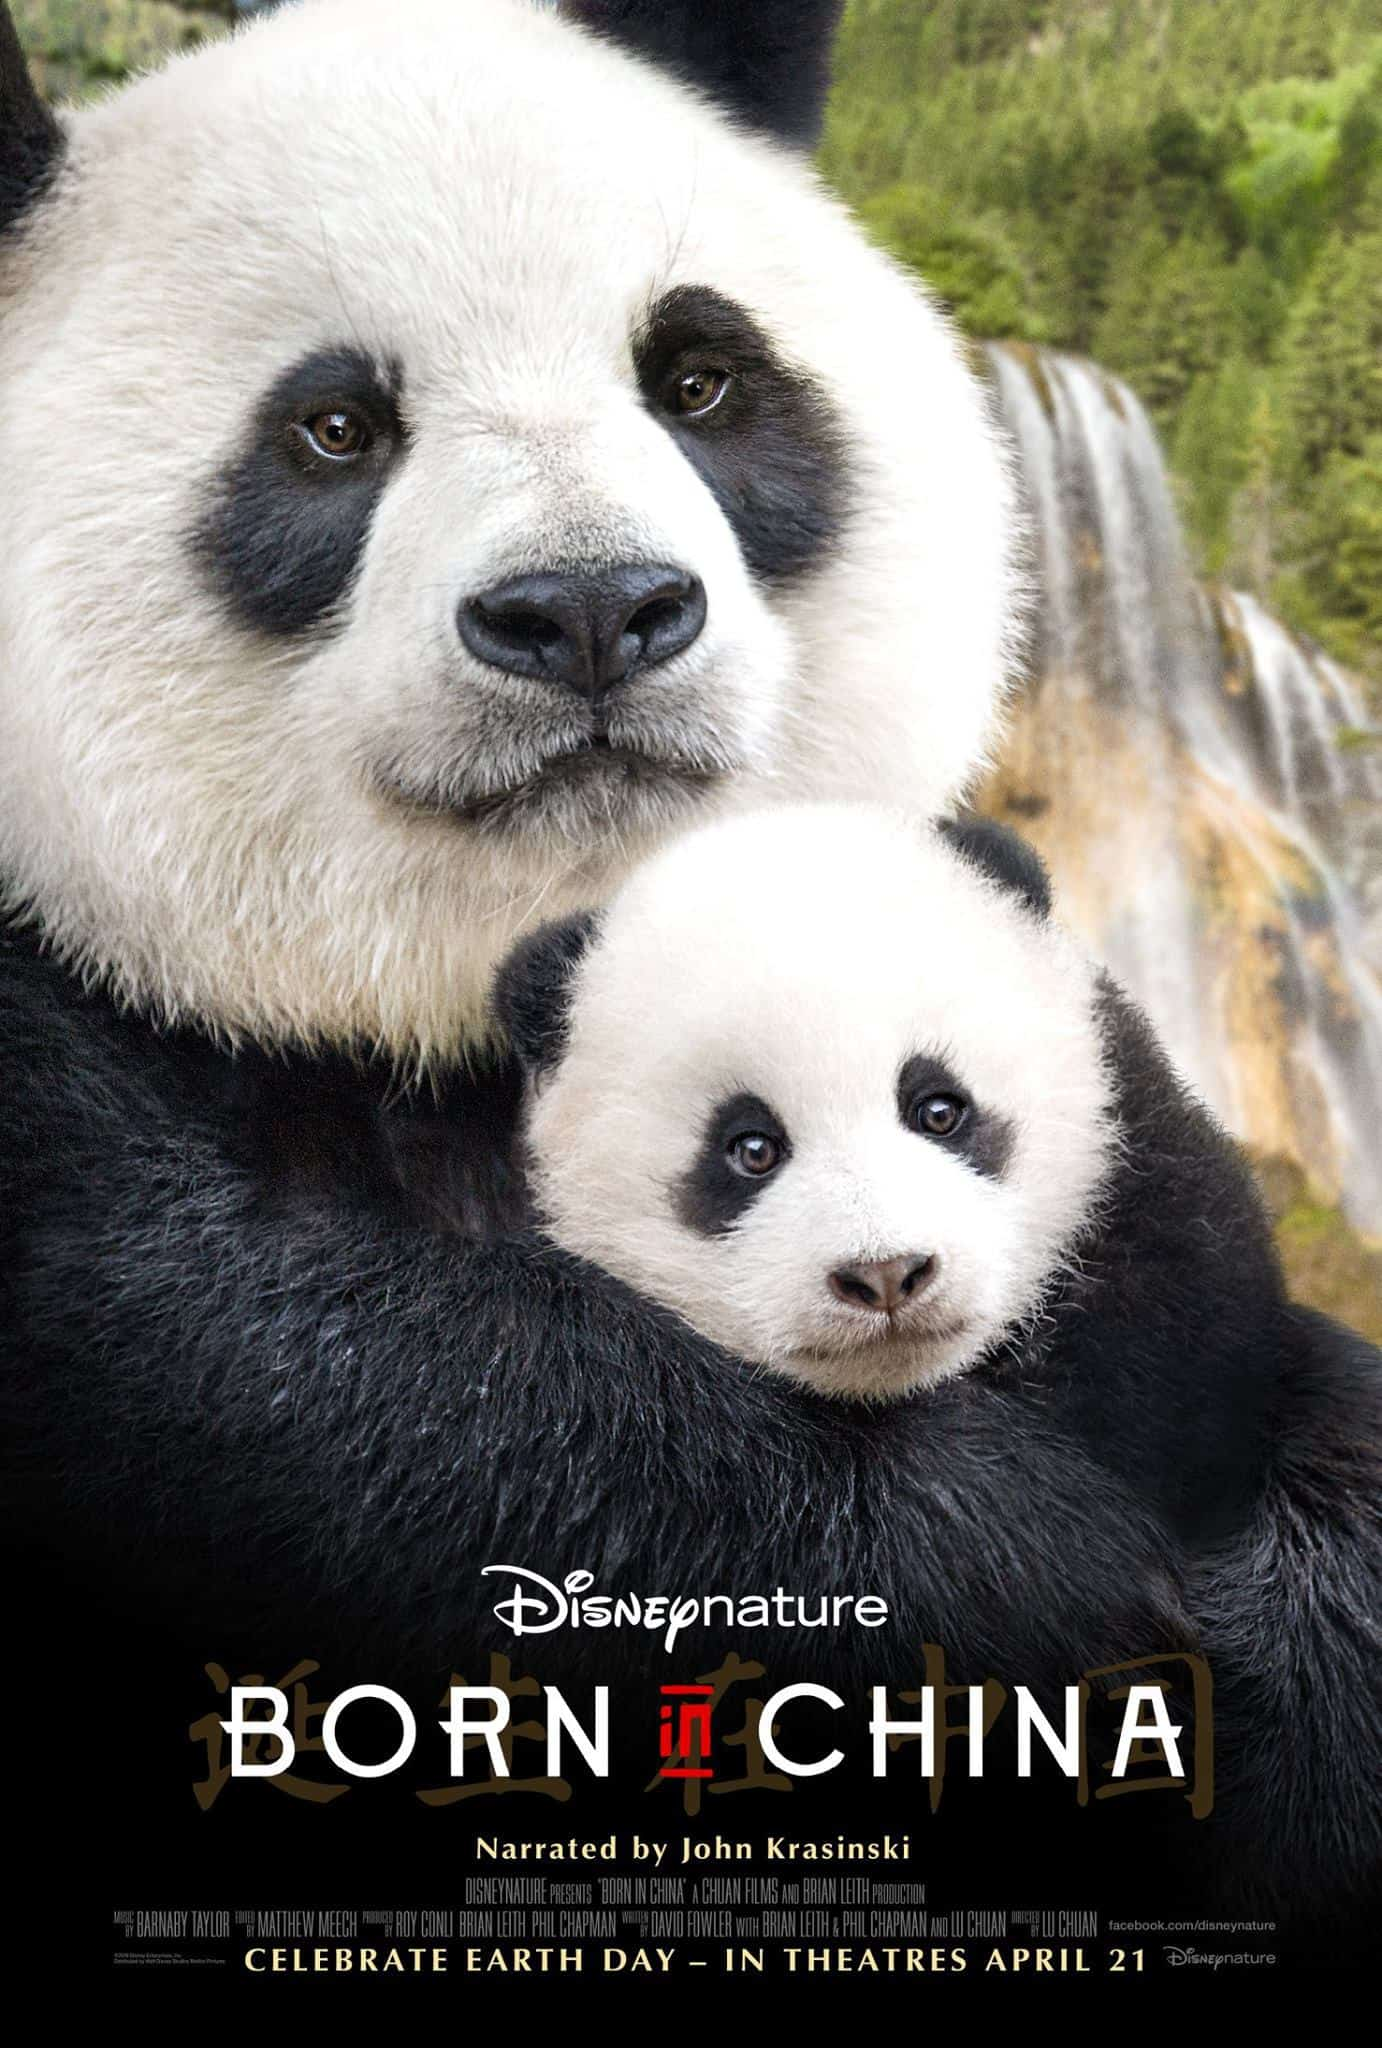 Born In China movie premiere